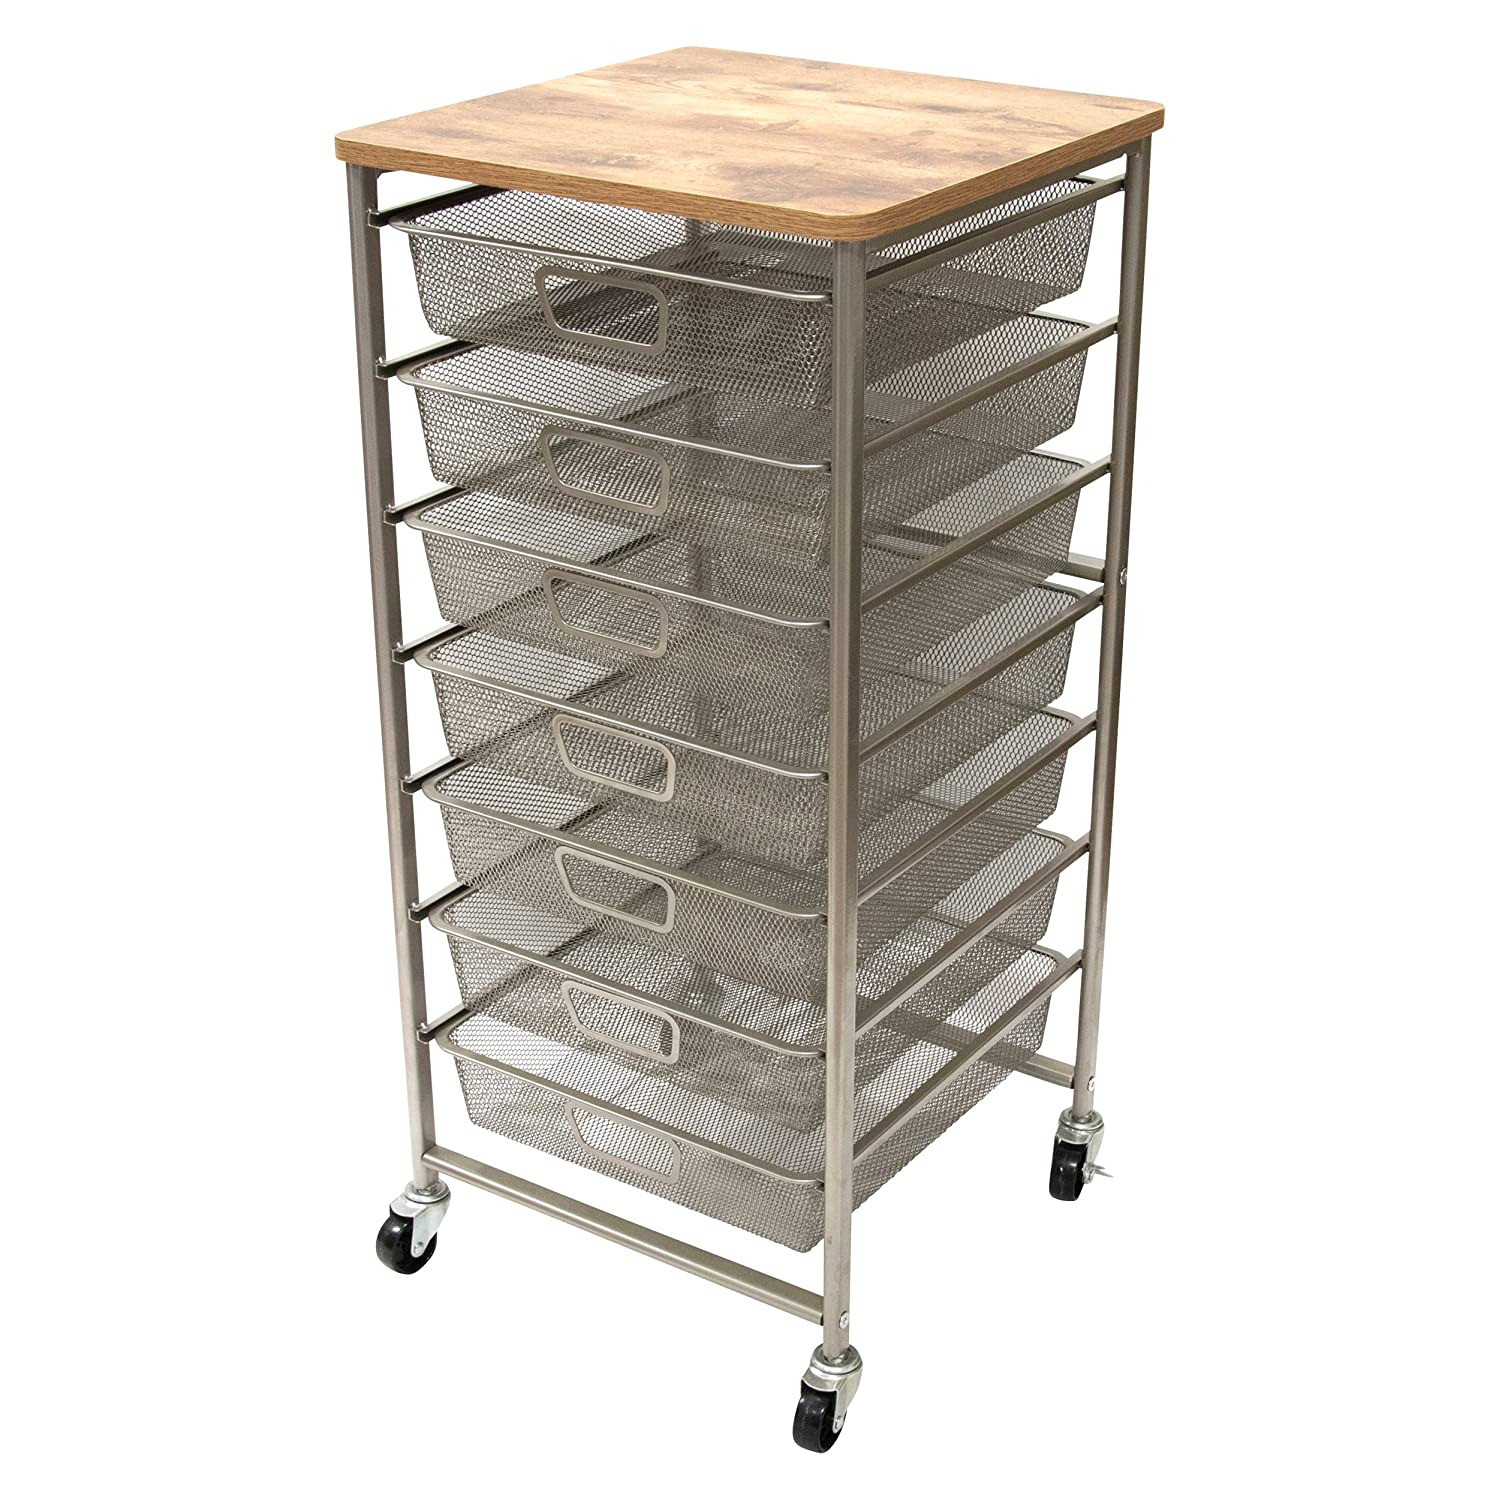 Storage Studios CH93520A Signature Design Industrial Storage Cart, Silver, Tan